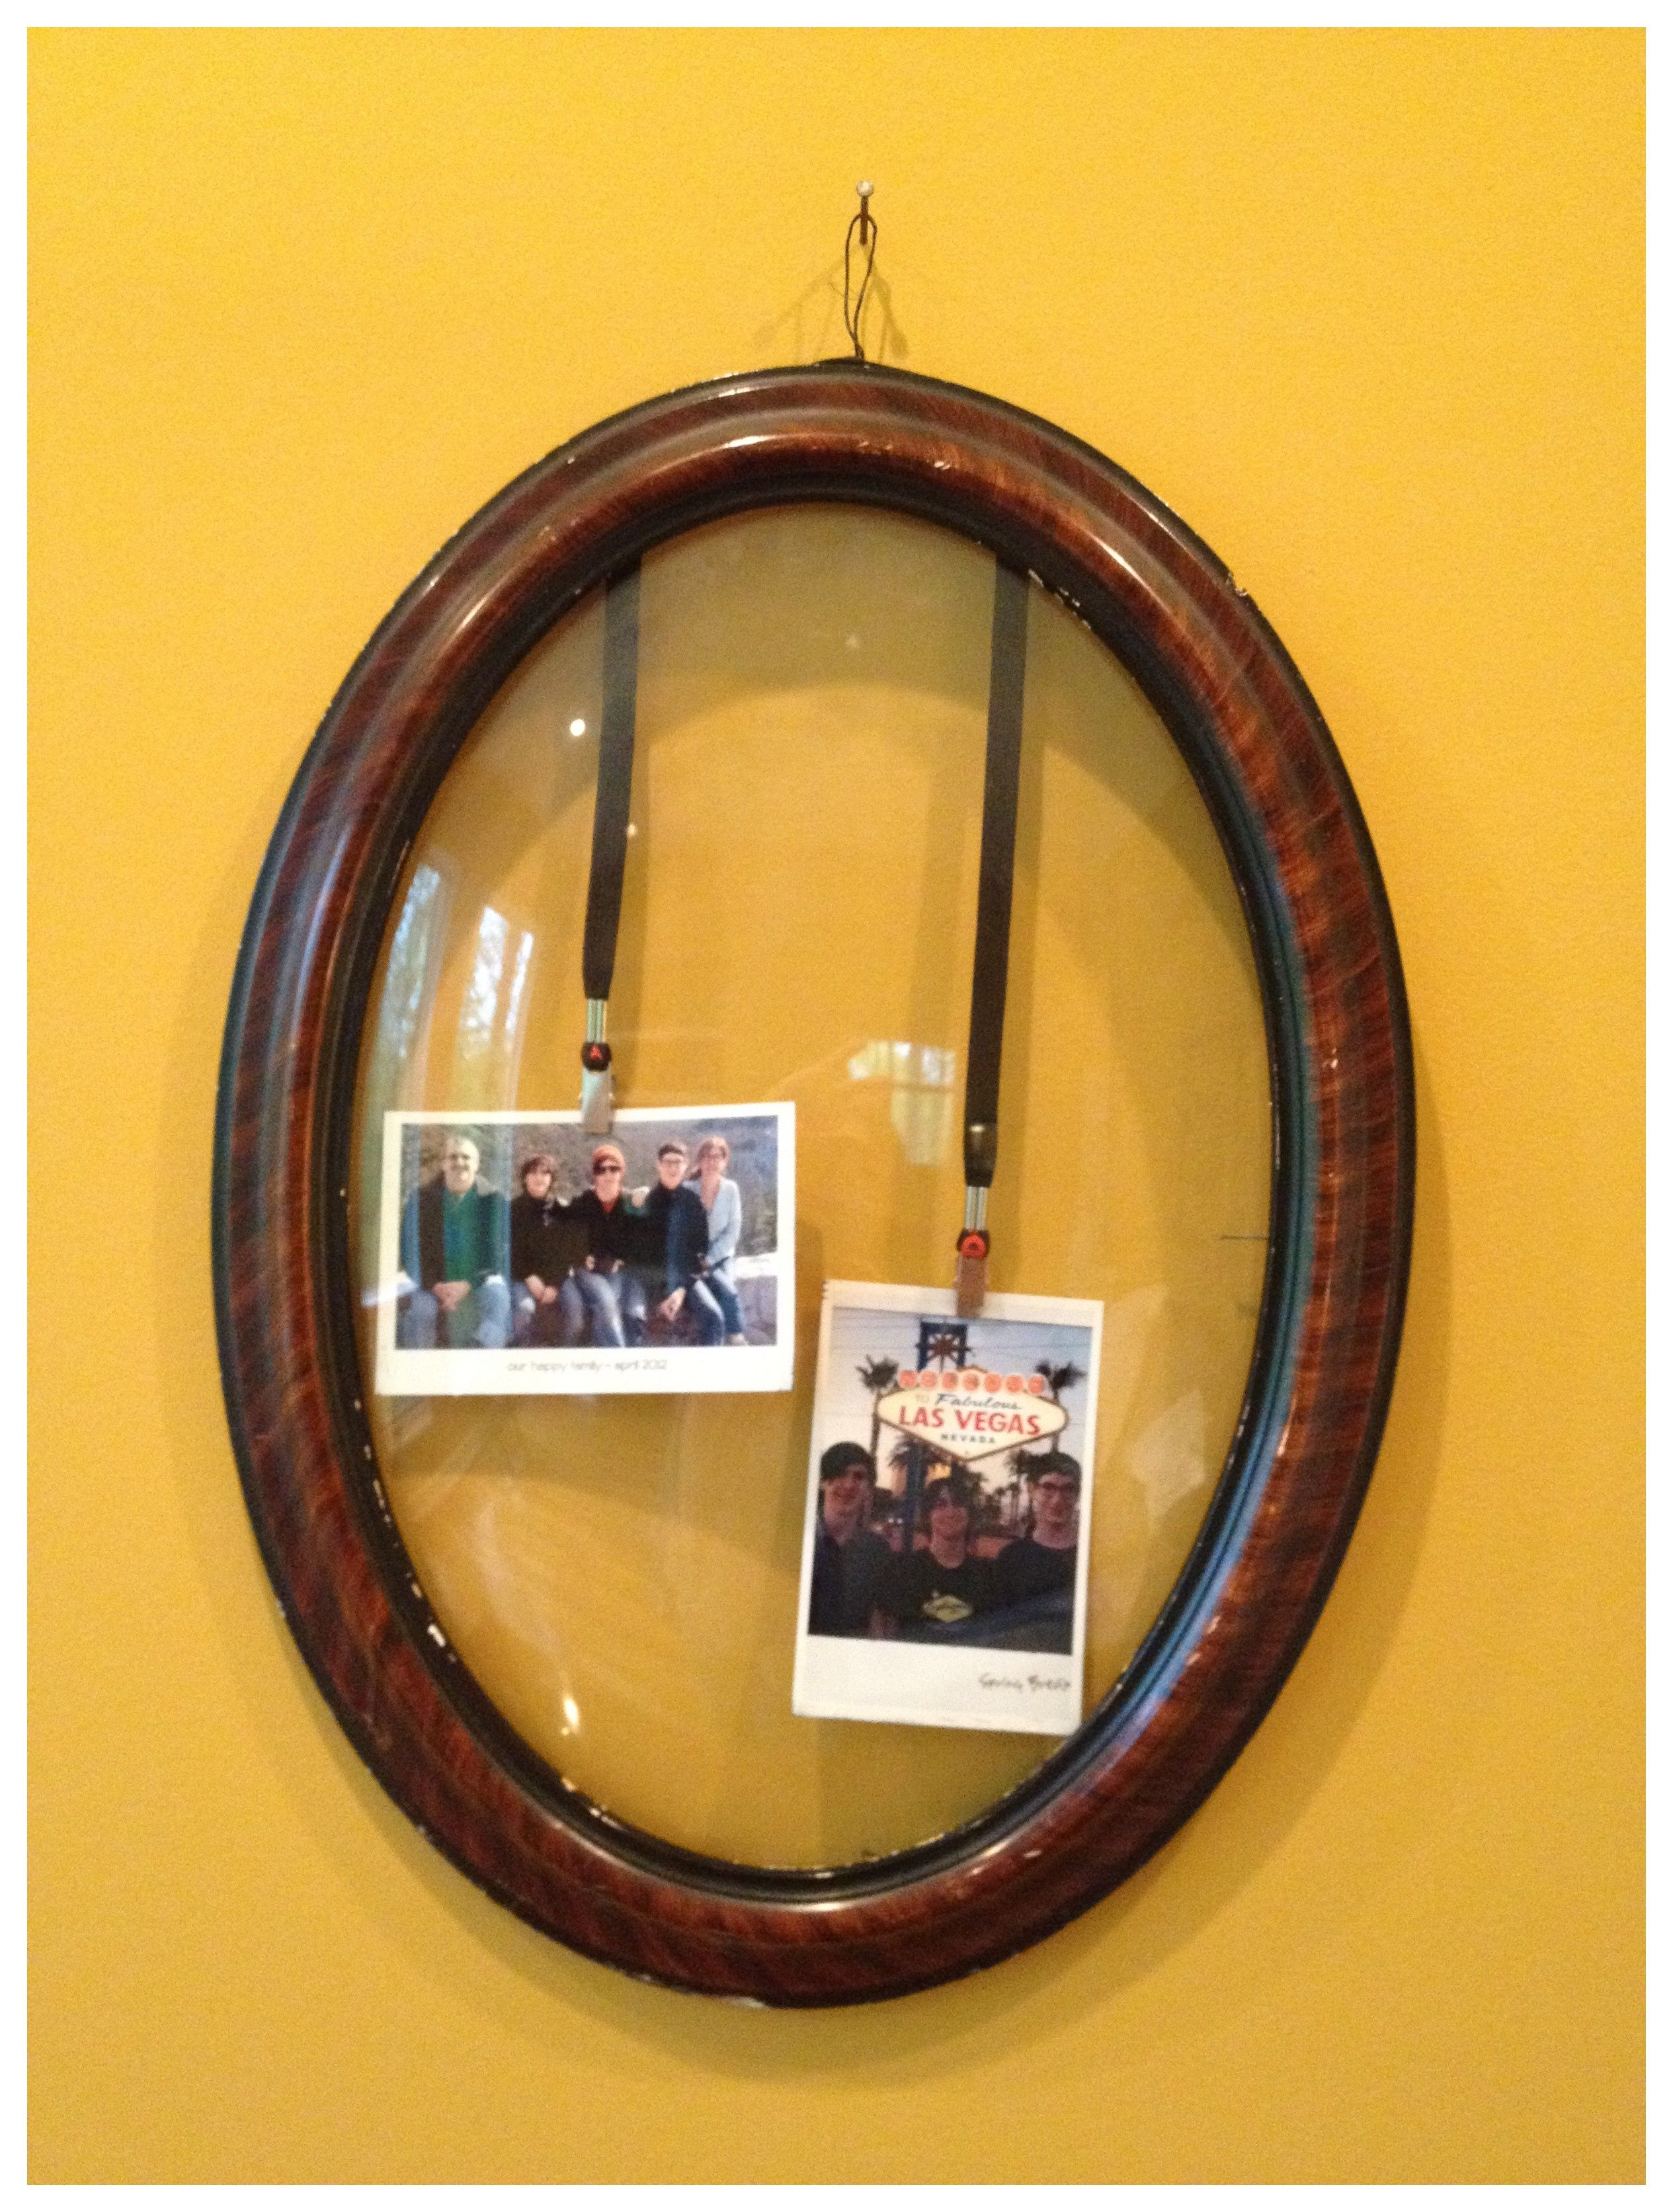 Old wooden frame with convex glass - now a fun frame to display our ...